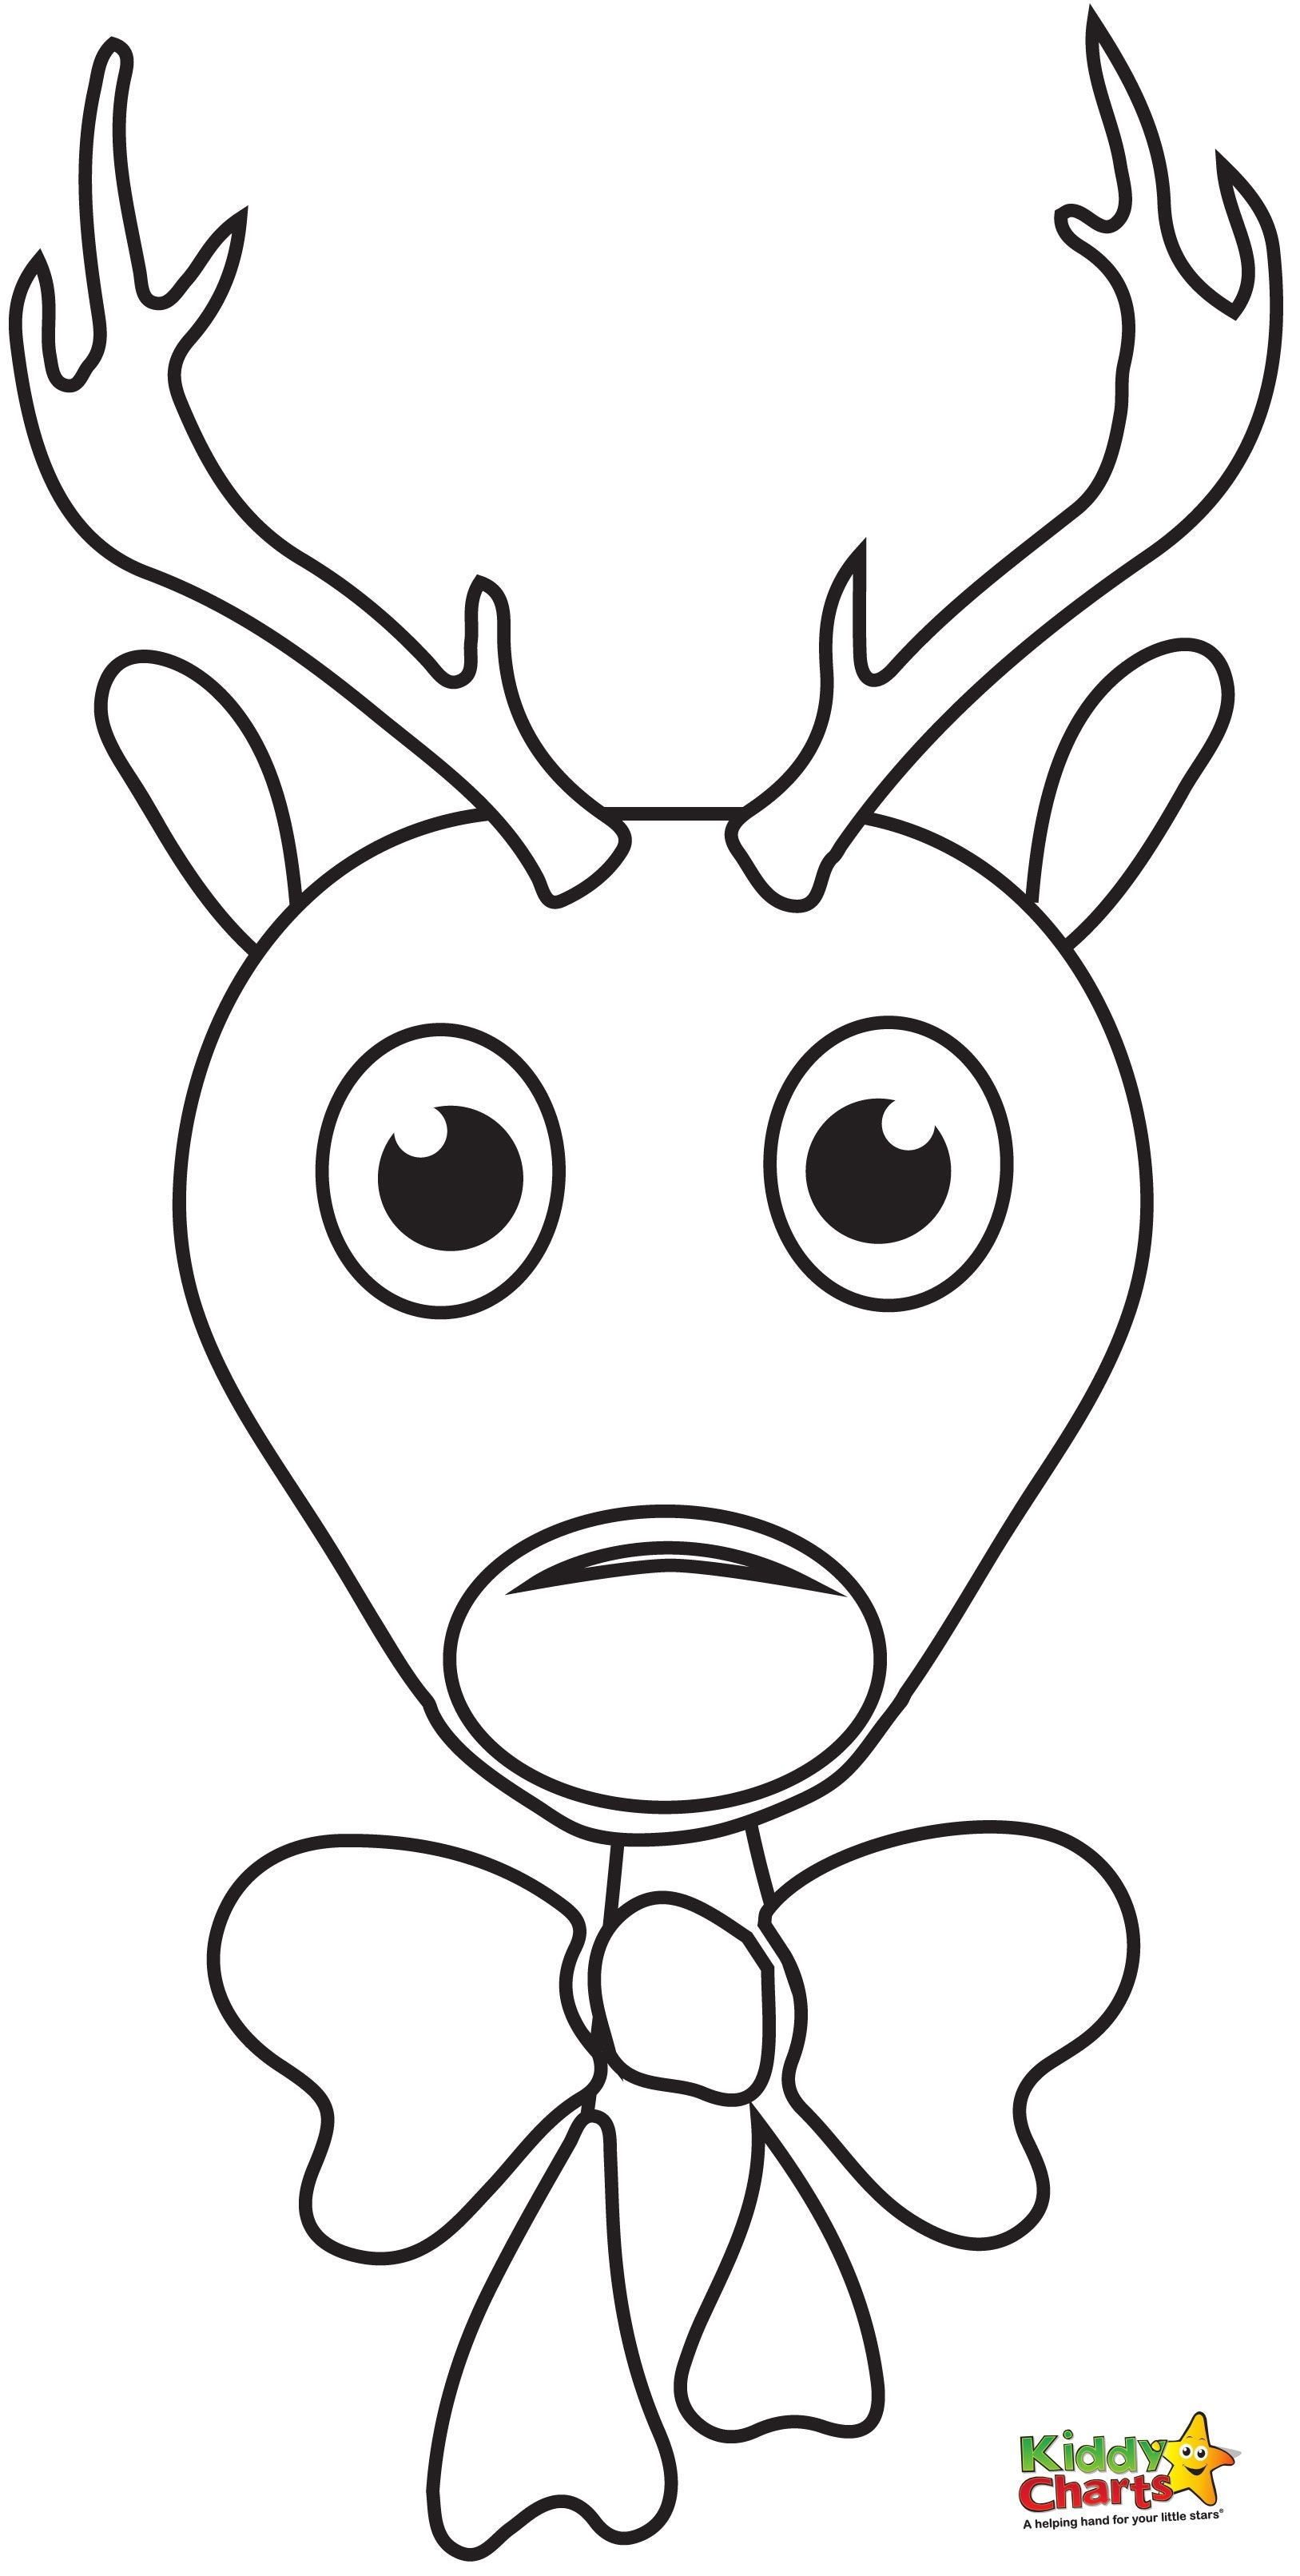 Reindeer Face Coloring Pages Free Rudolph Coloring Pages Christmas Coloring Pages Animal Coloring Pages